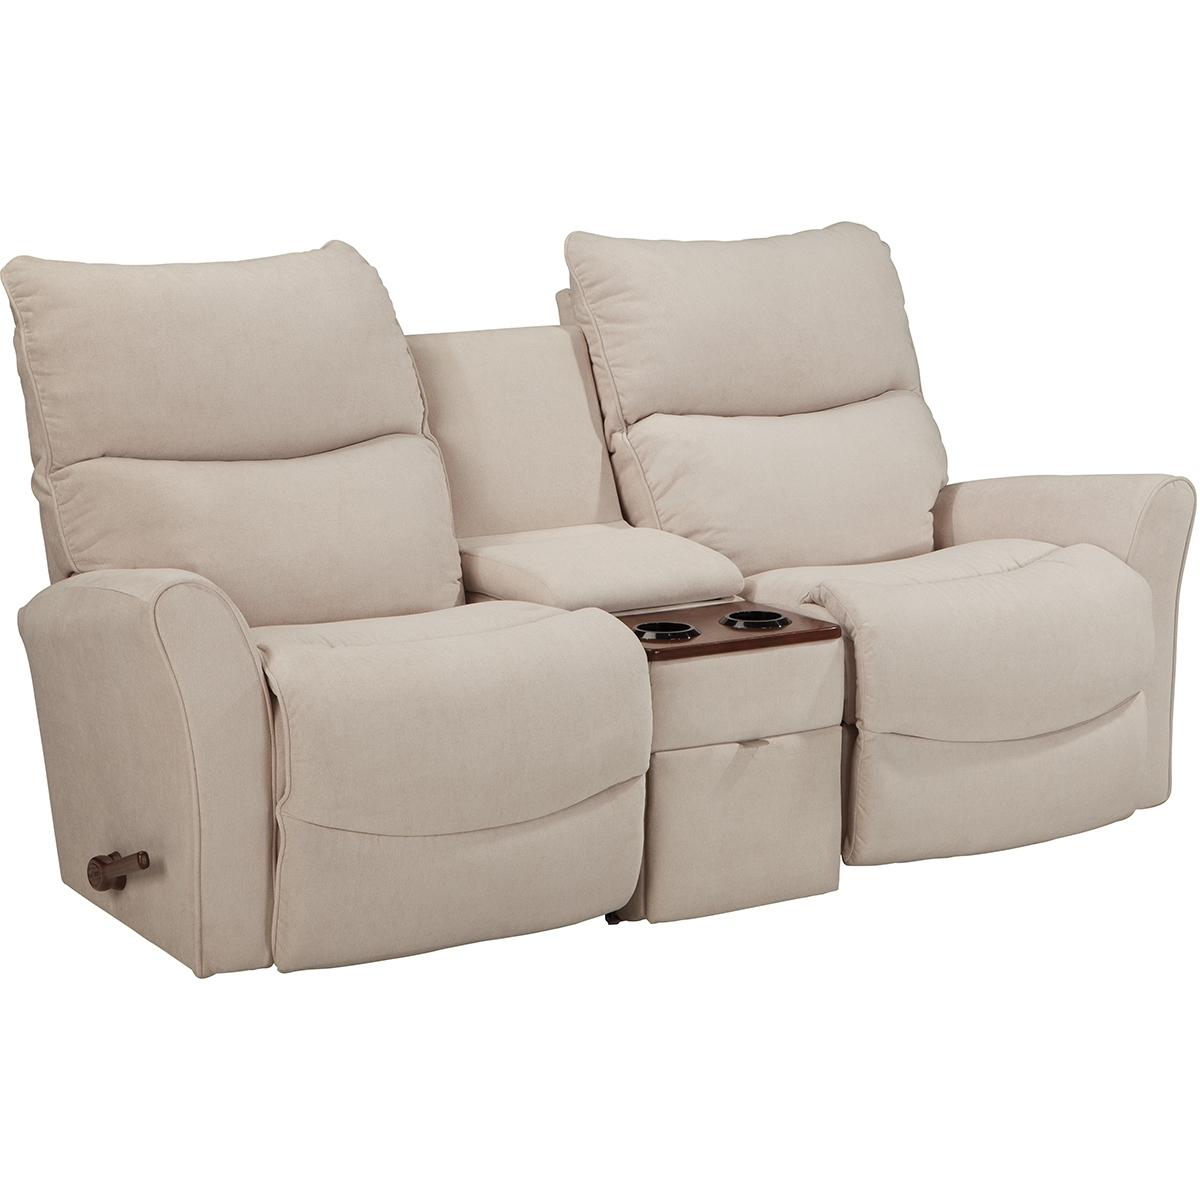 Sectional Sofas & Sectional Couches | La Z Boy Regarding Lazy Boy Sectional Sofas (View 2 of 10)